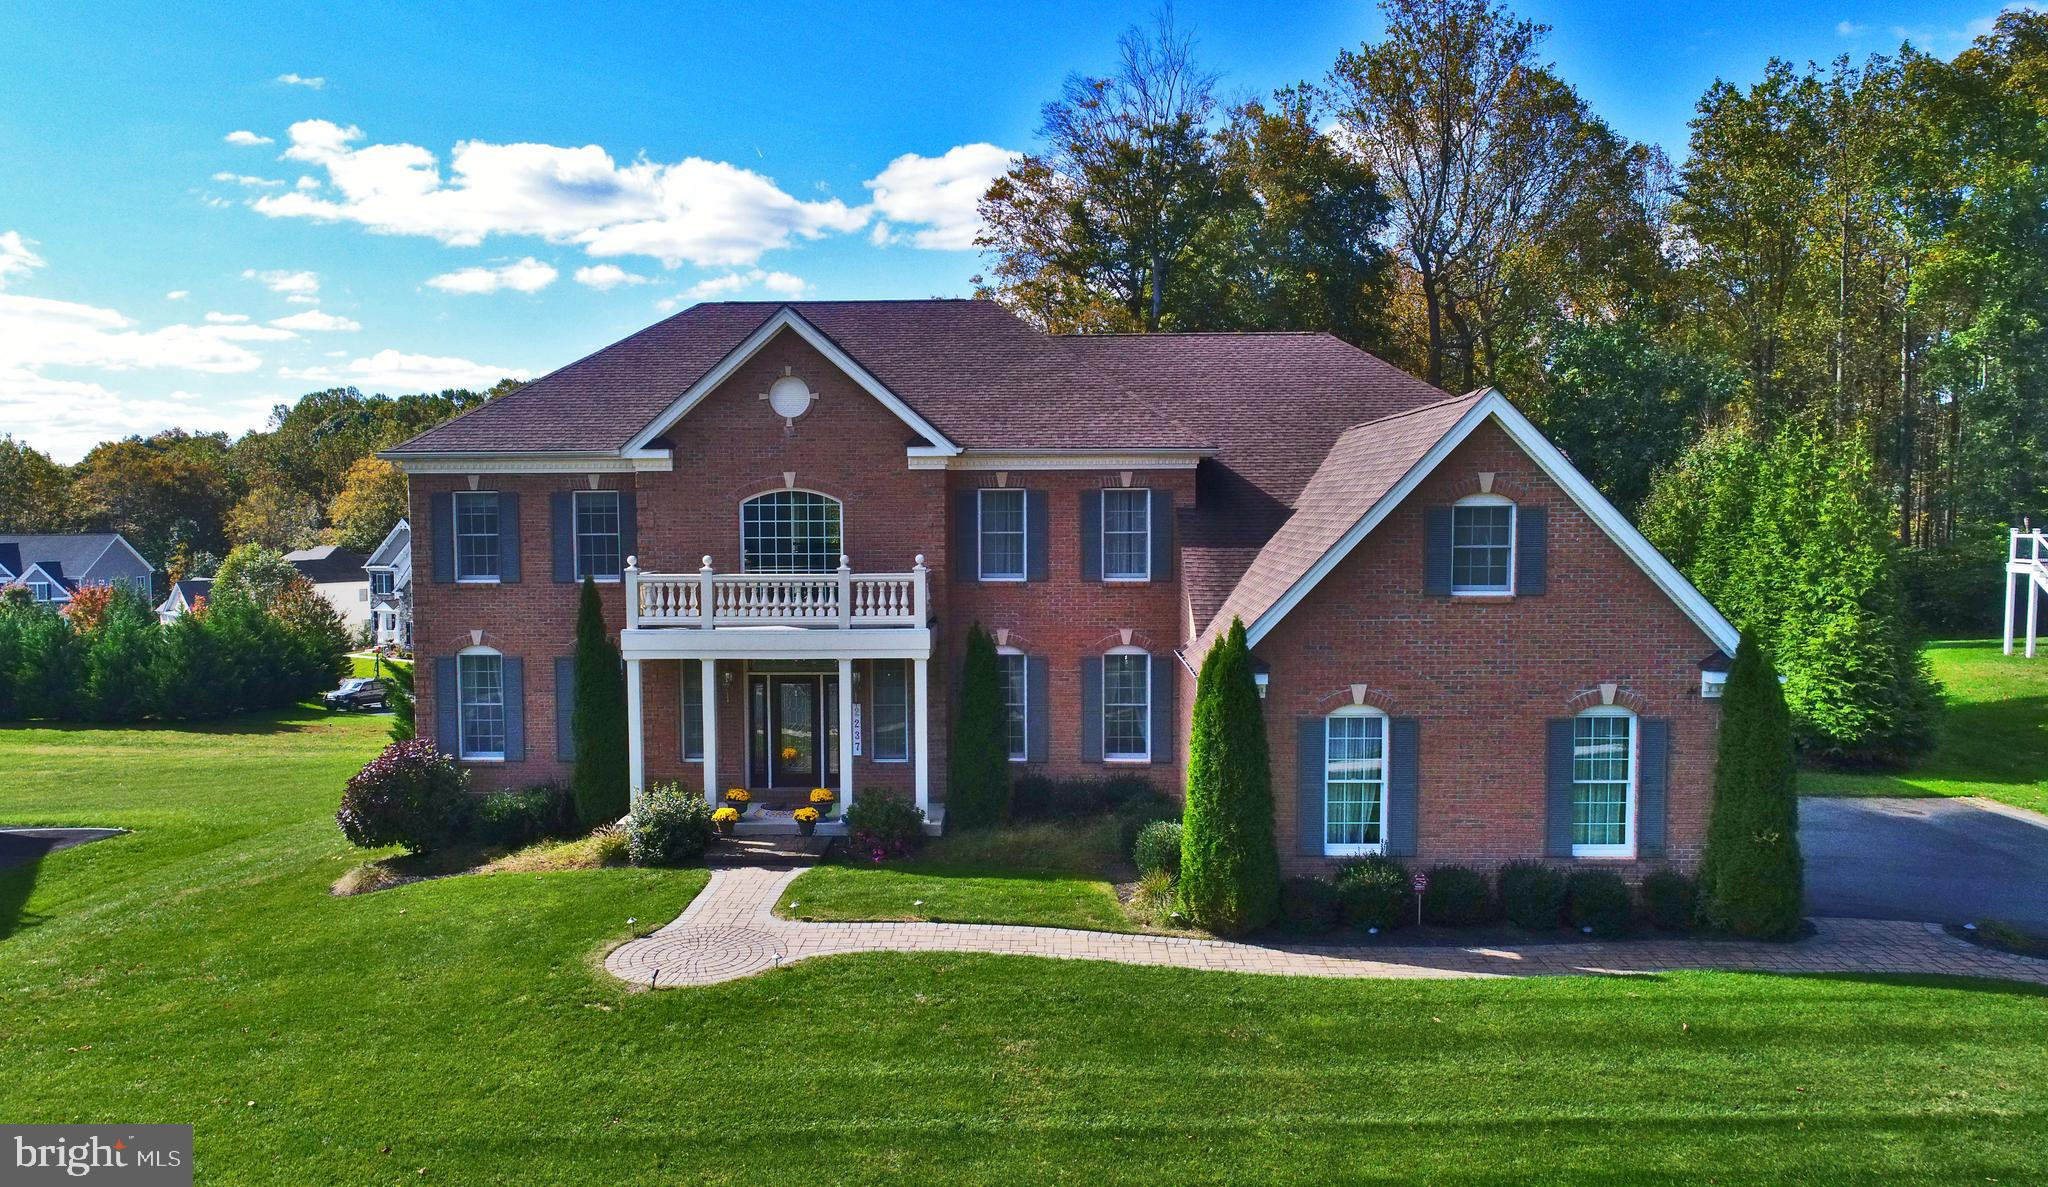 2237 GREENCEDAR DRIVE, BEL AIR, MD 21015